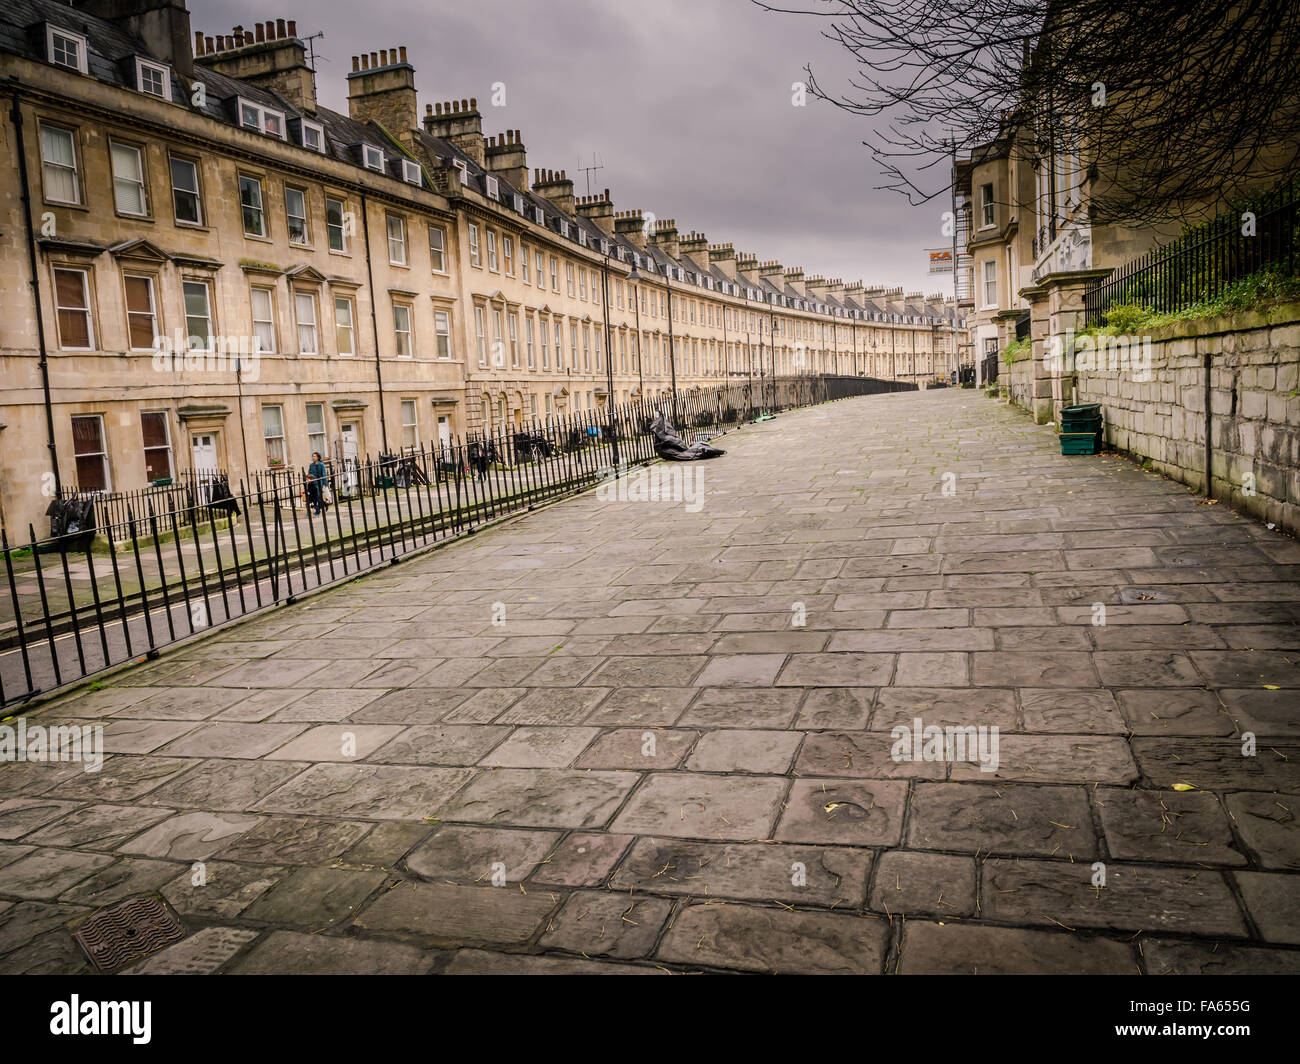 Street Scene, City of Bath, Somerset, - Stock Image